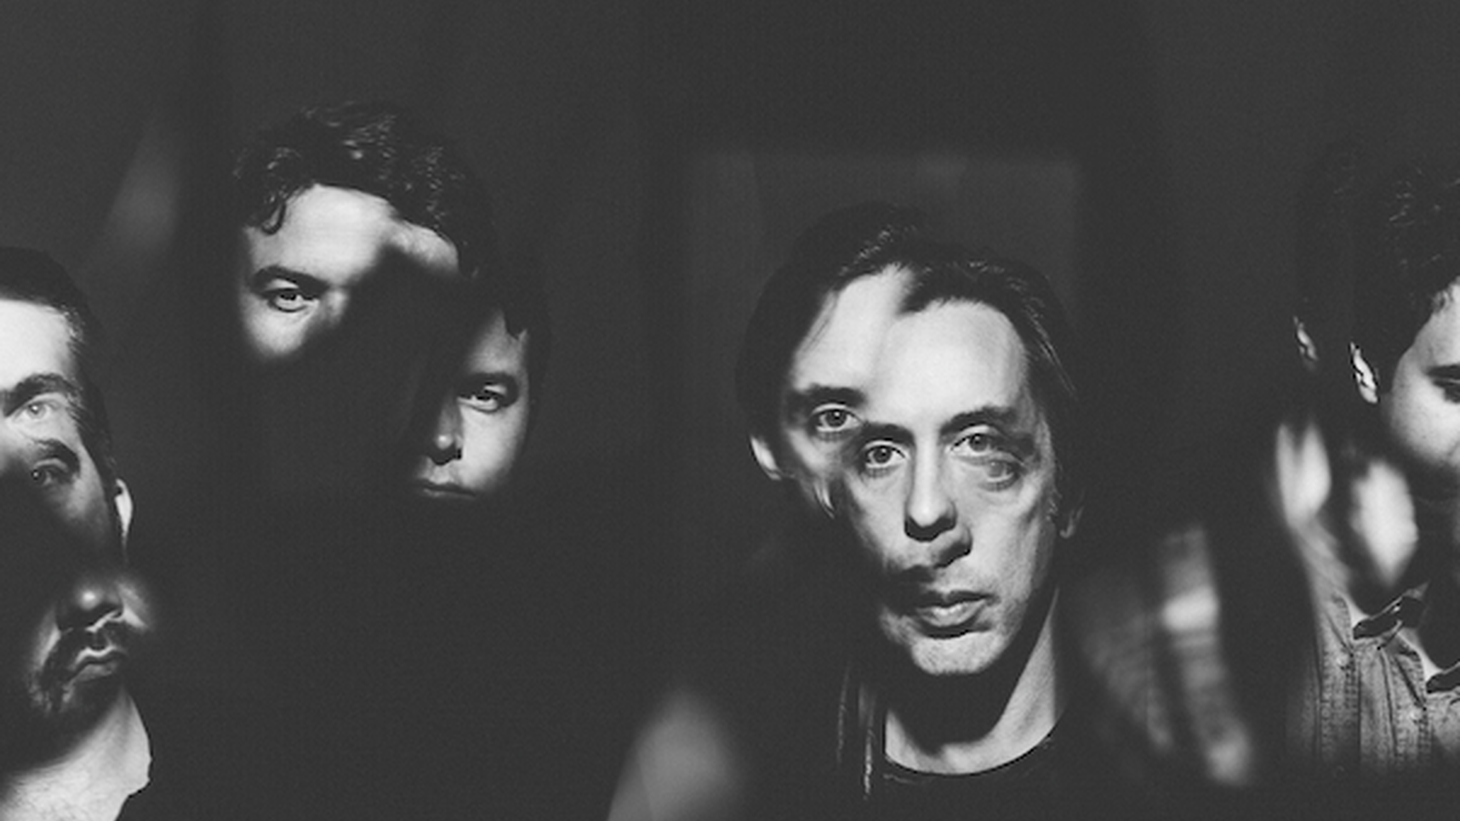 Canadian rockers Wolf Parade returned from a significant hiatus with their fantastic record Cry Cry Cry. The album has an energetic urgency and is full of tightly crafted punchy pop-rock anthems that will be incredible to witness live.